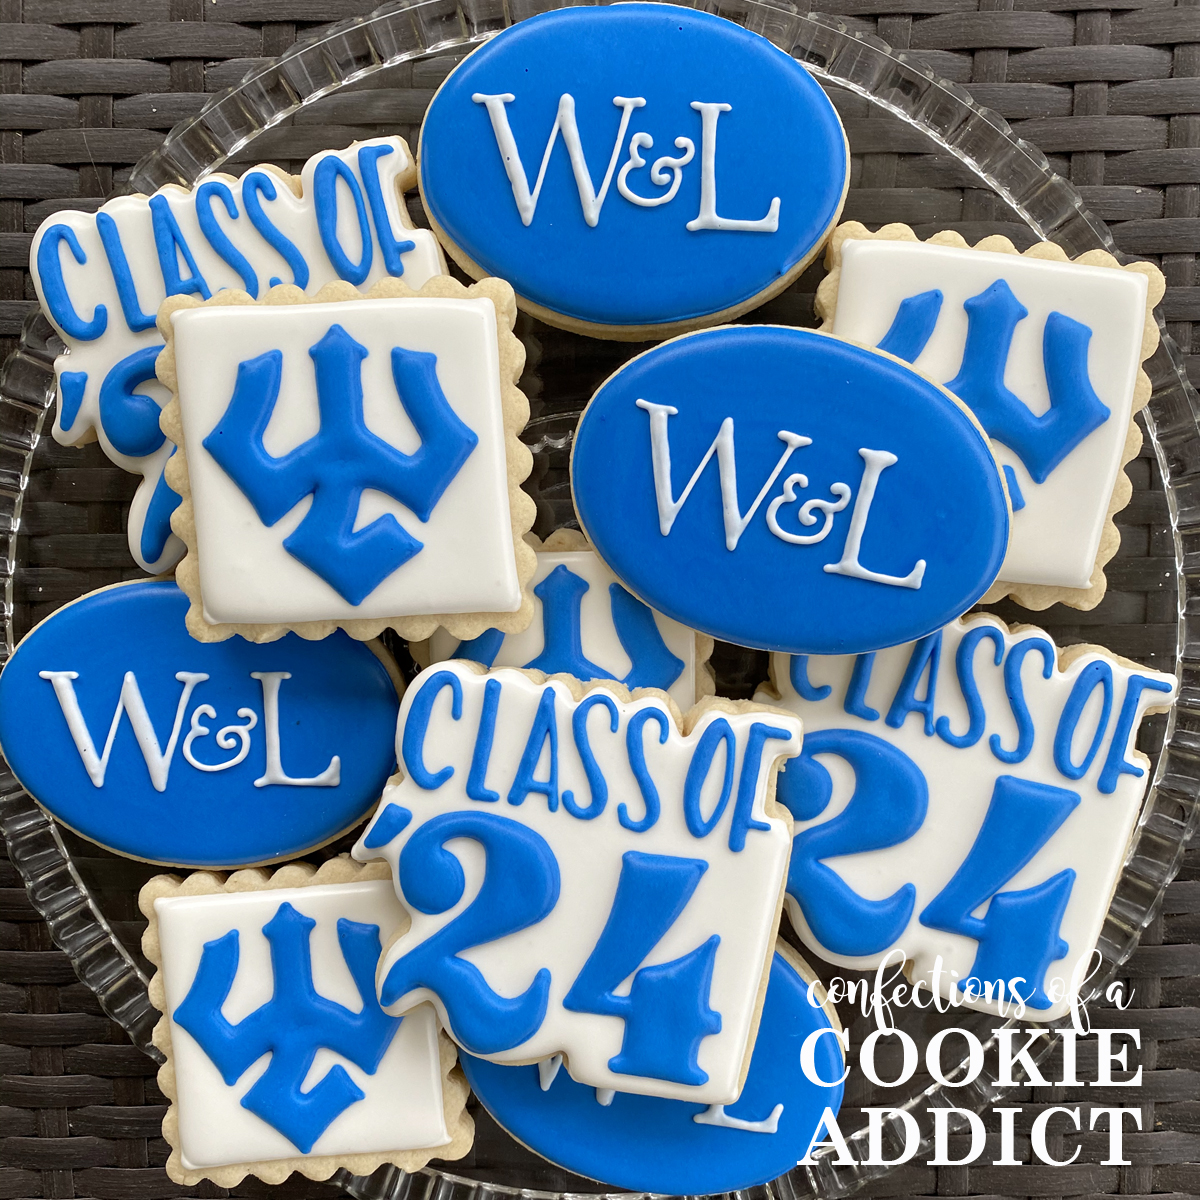 Washington & Lee Cookies